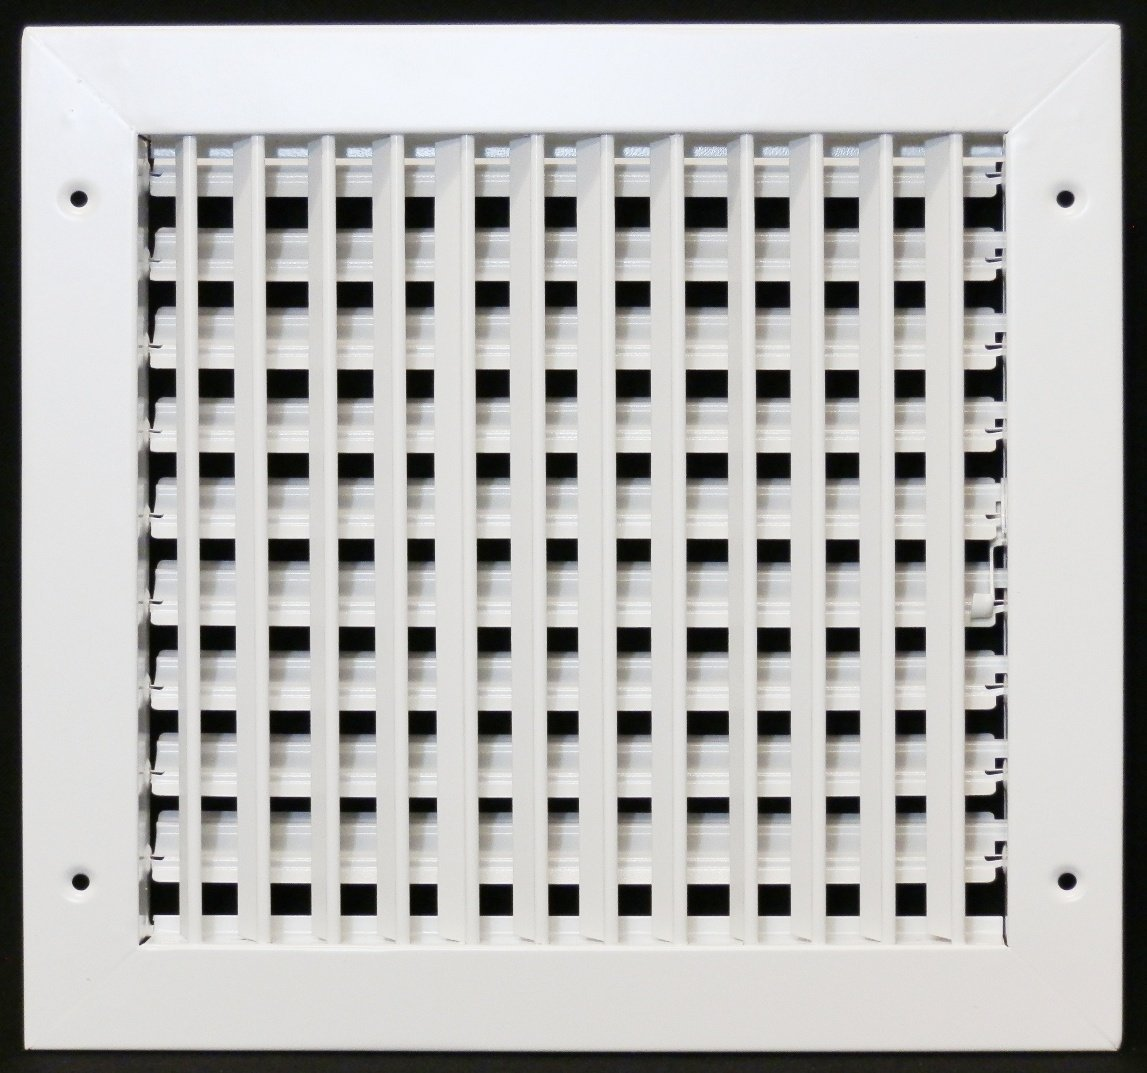 20'' X 16'' ADJUSTABLE AIR SUPPLY DIFFUSER - HVAC Vent Duct Cover Sidewall or Cieling - Grille Register - High Airflow - White